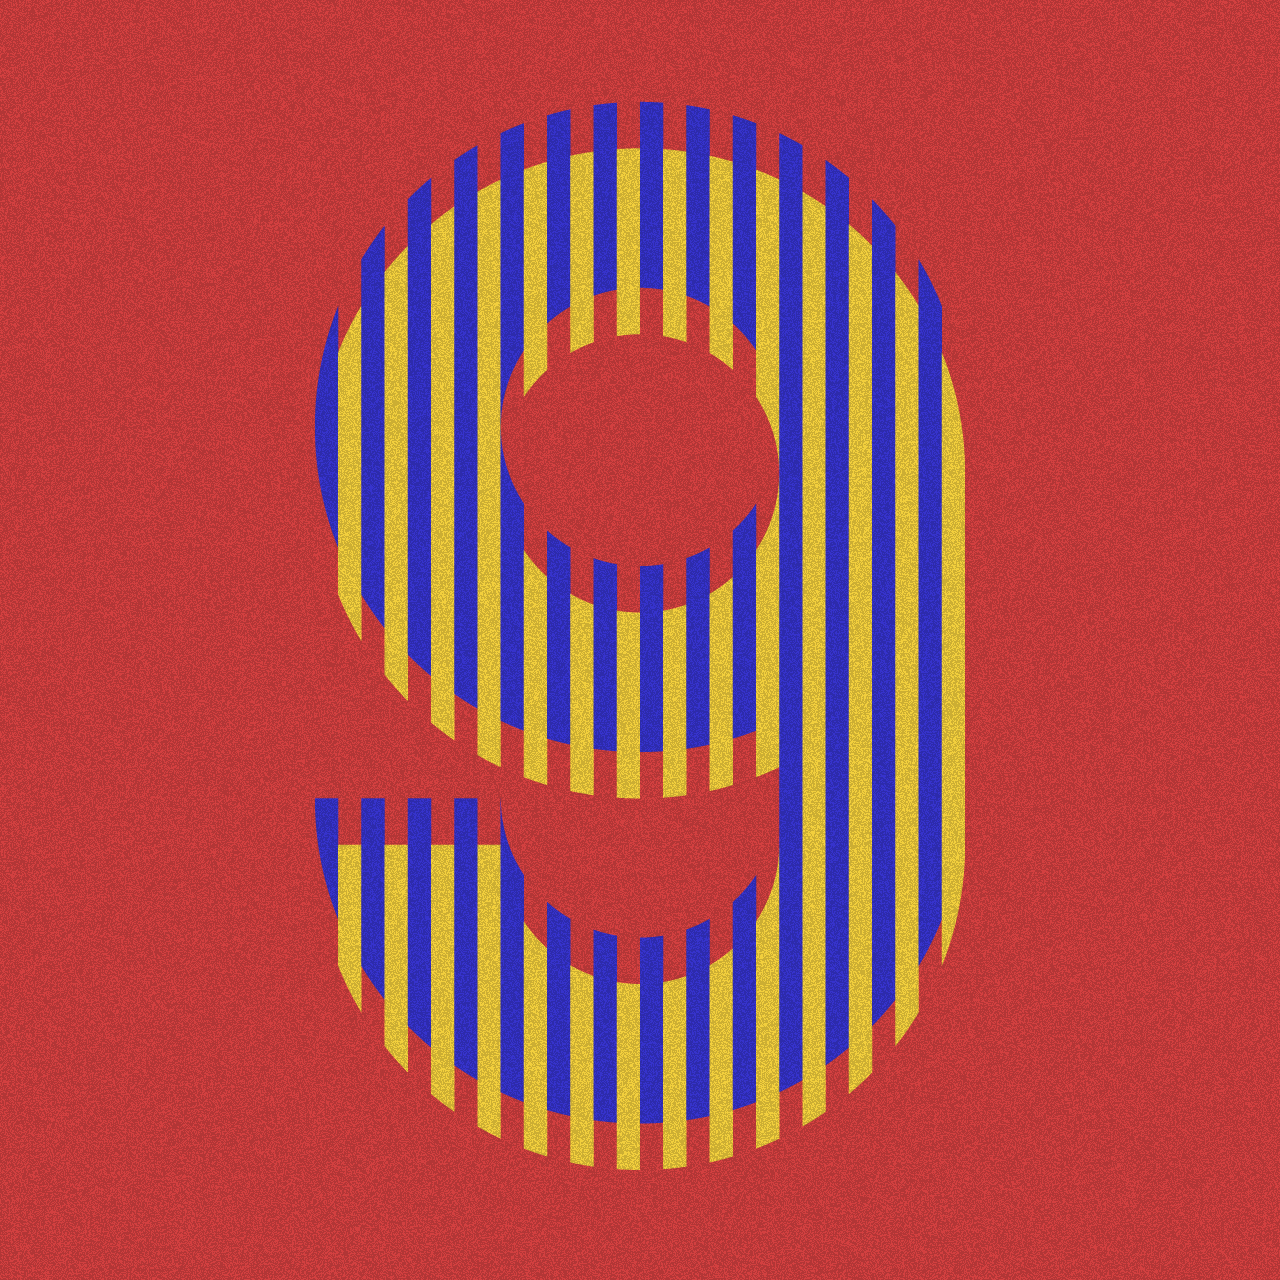 My 9 submission for 36 Days of Type